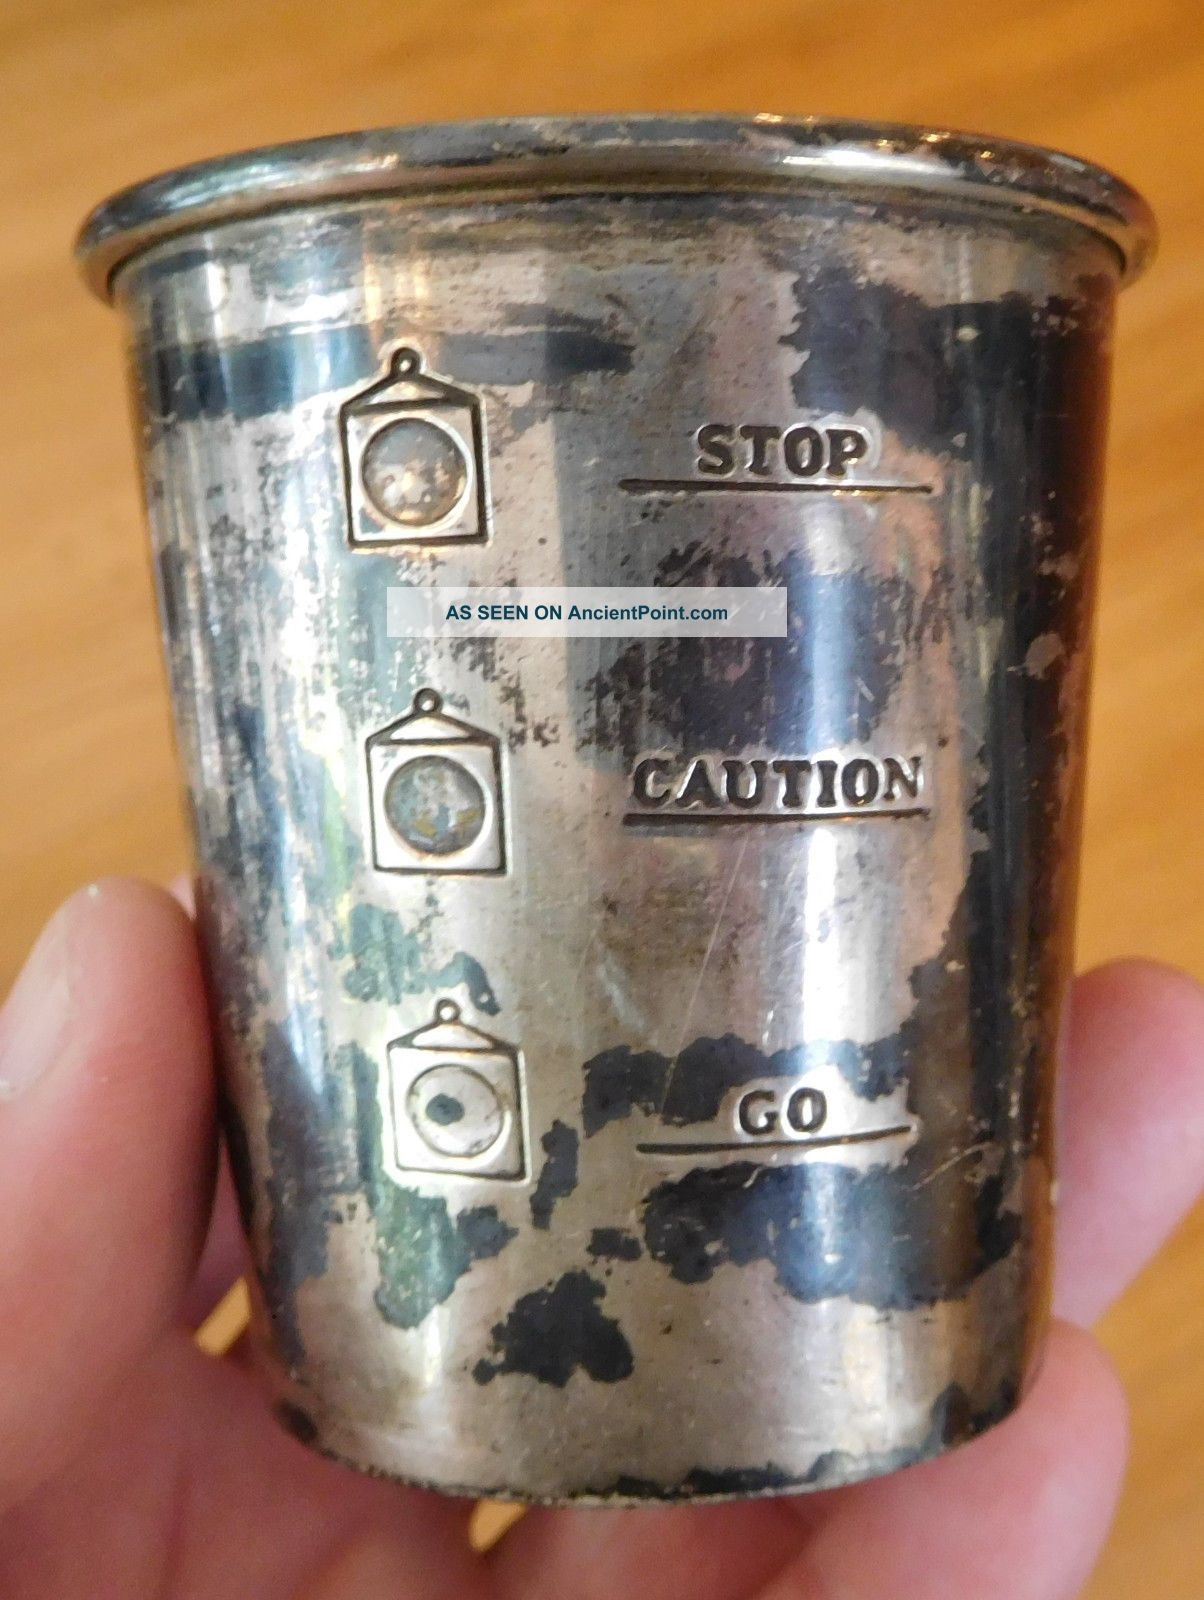 Alvin Sterling Silver 925 Stoplight Jigger Cup Go Caution Stop S275,  36.  8g Vtg Cups & Goblets photo